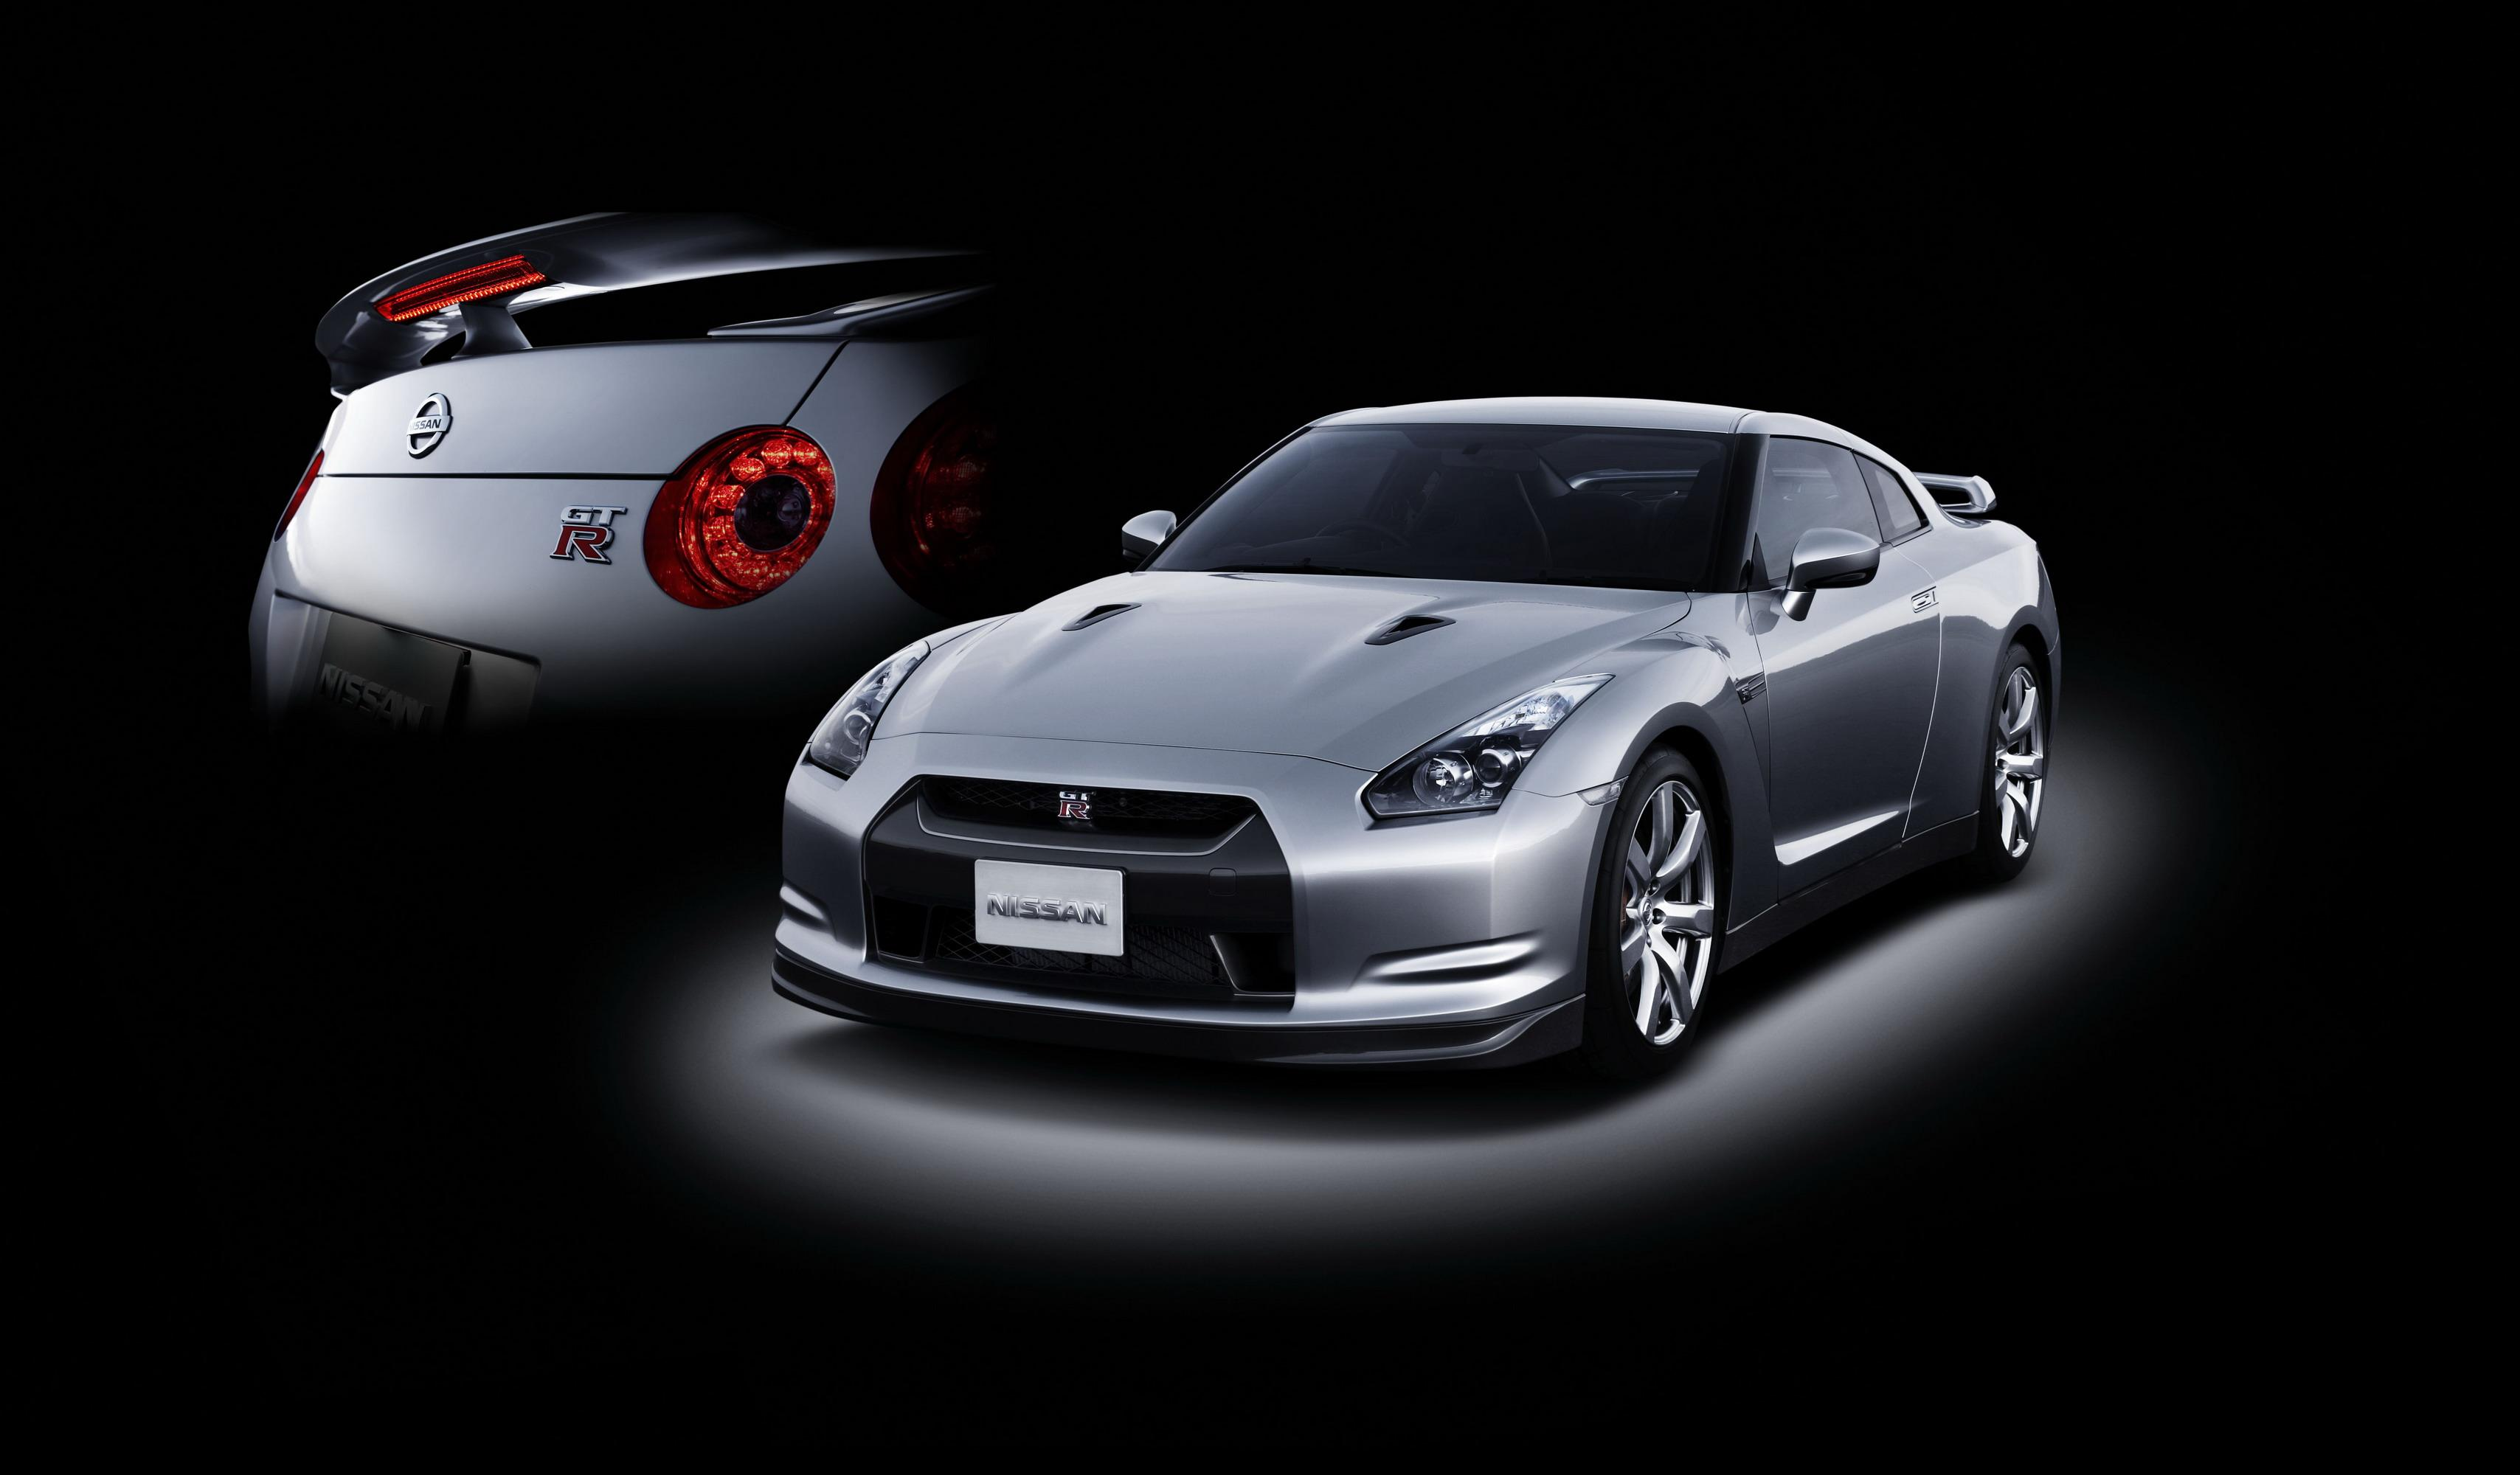 Exceptionnel 2009 Nissan GT R Review   Top Speed. »